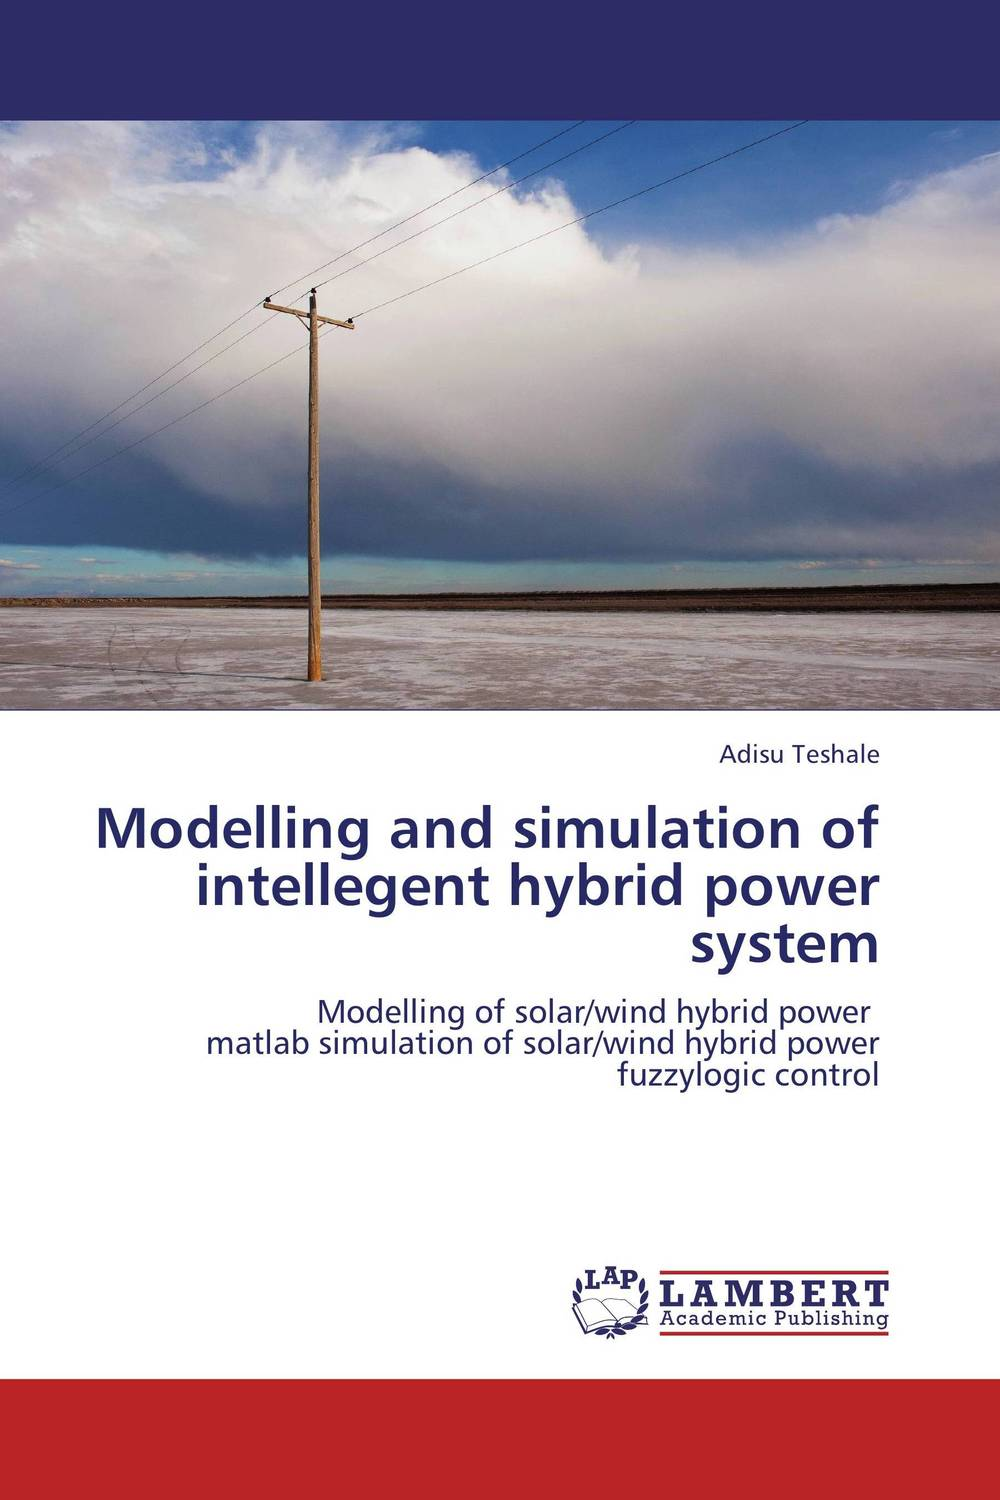 Modelling and simulation of intellegent hybrid power system simulation of atm using elliptic curve cryptography in matlab